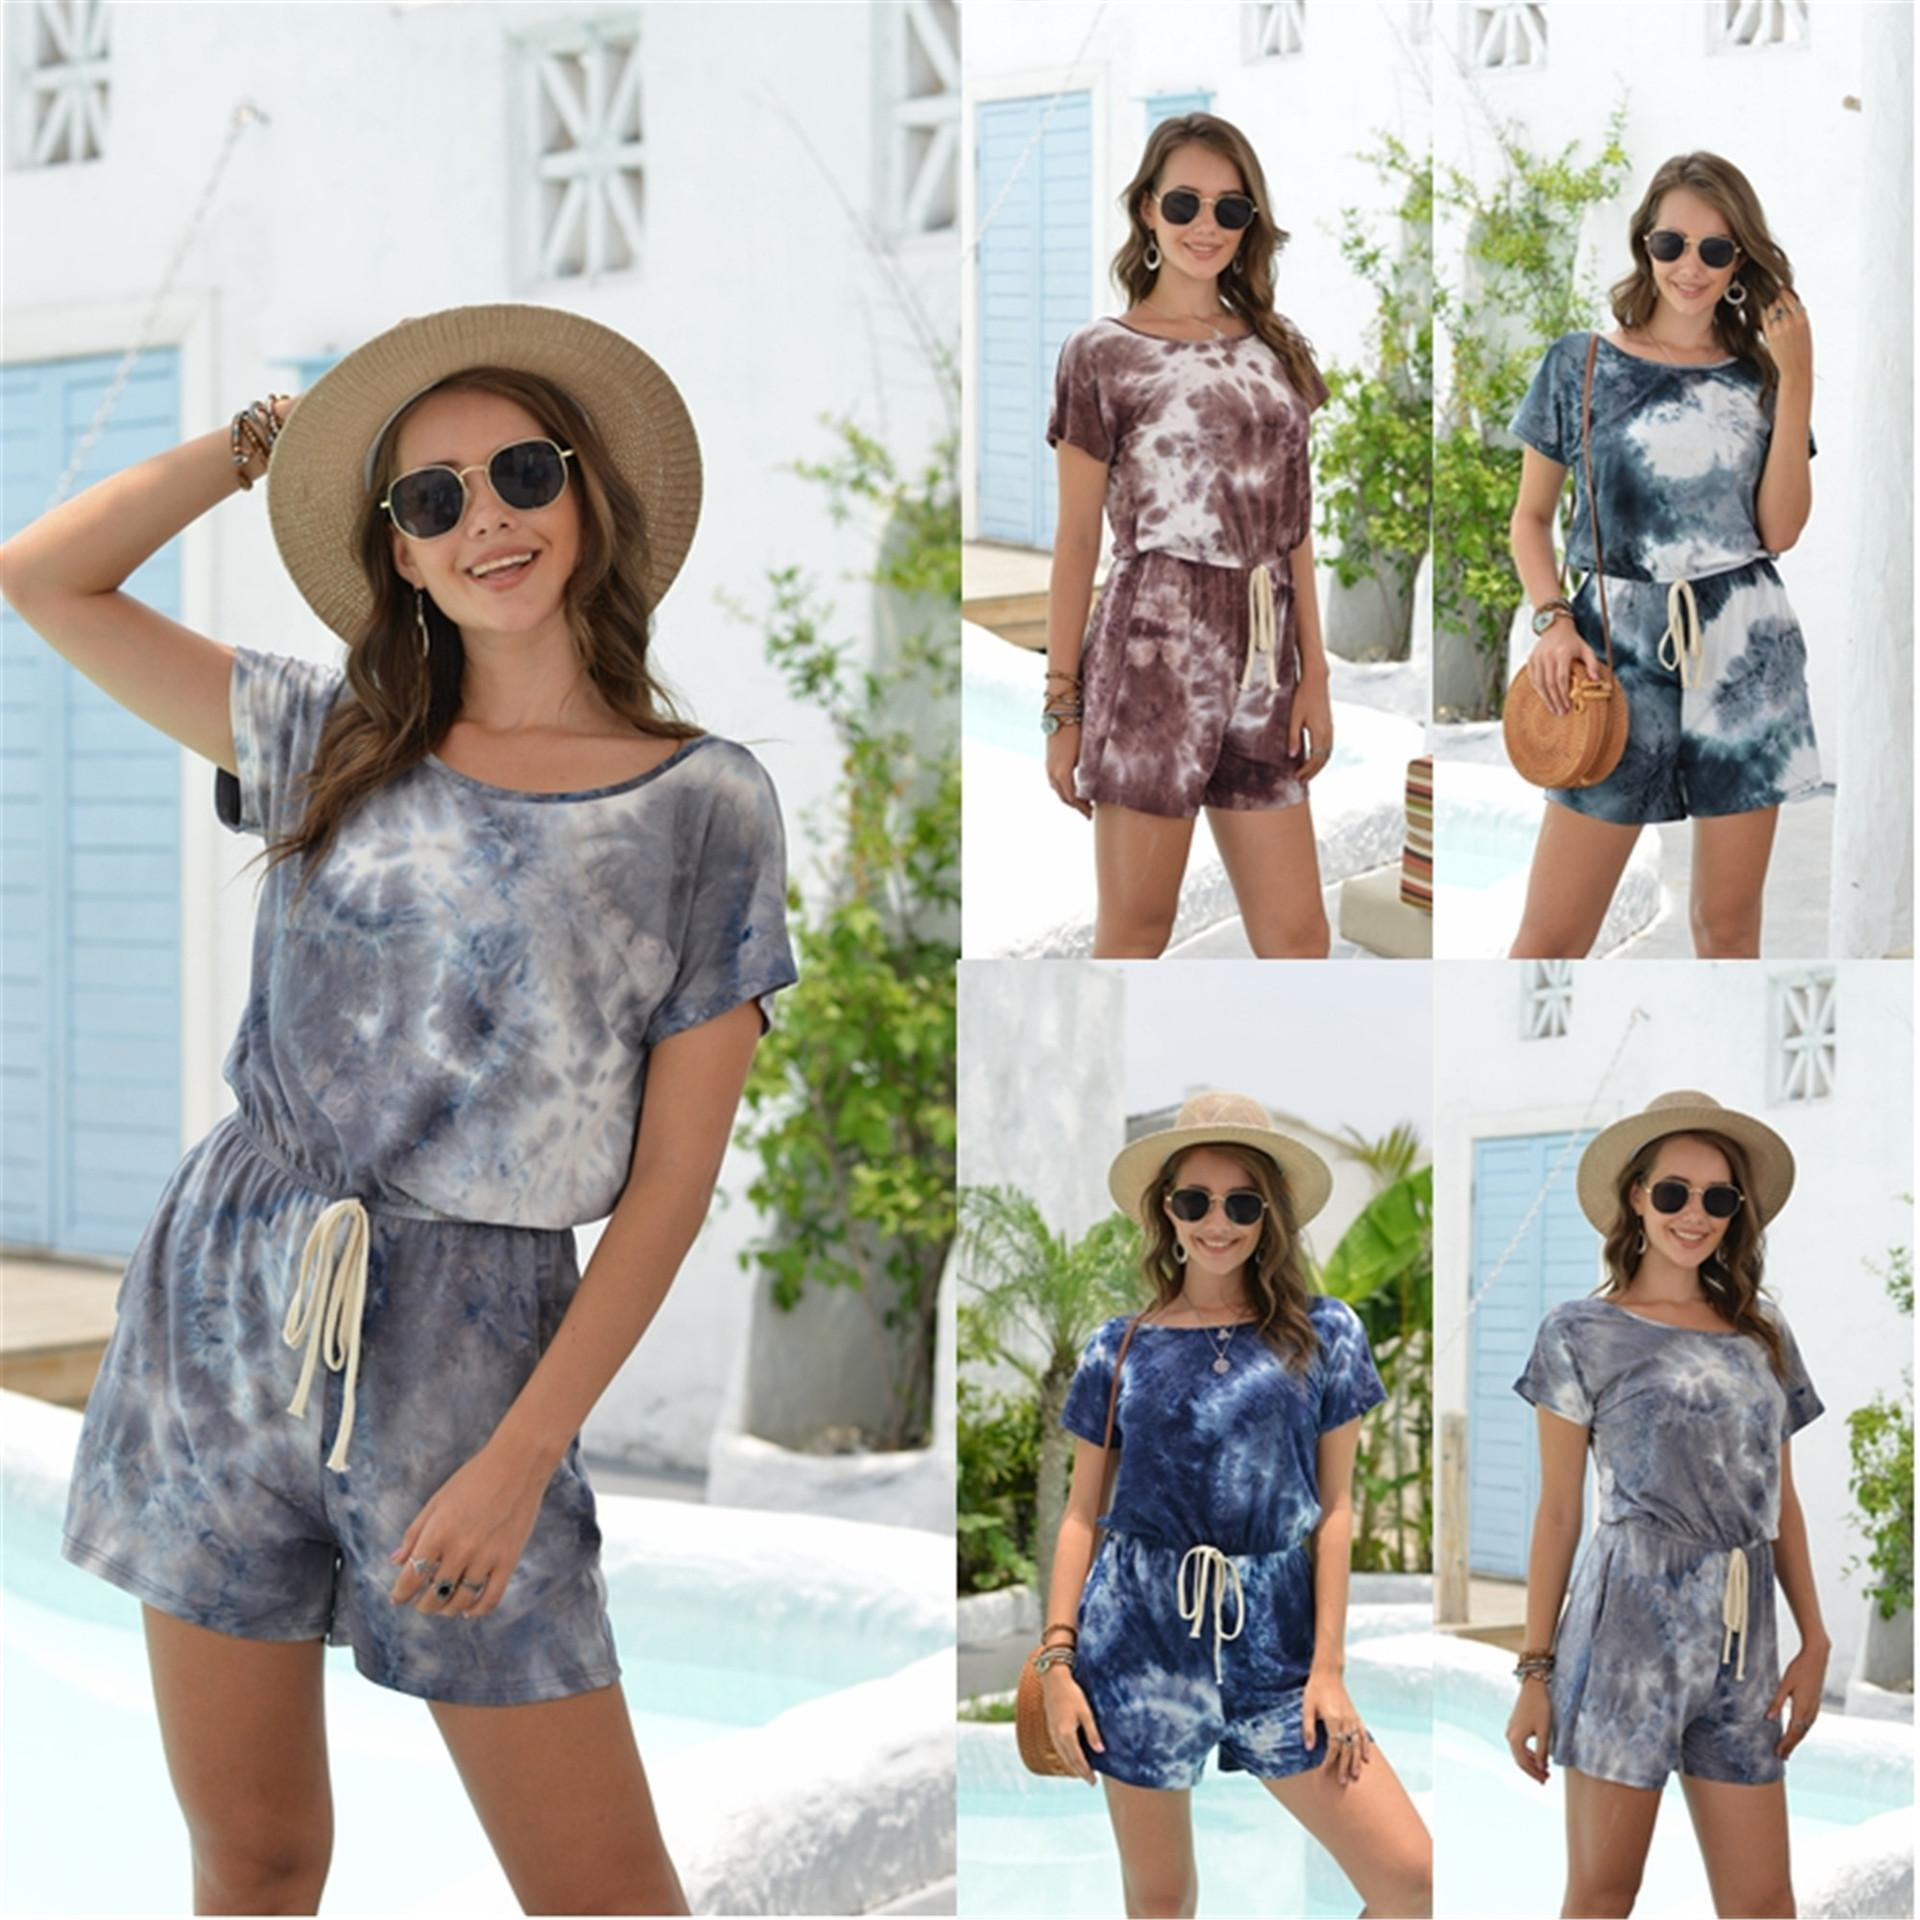 2020 Summer Playsuits Women Cotton Lace up Tie-dye Short Sleeve O Neck Casual T Shirt Shorts Jumpsuit Femme Rompers S-XXL